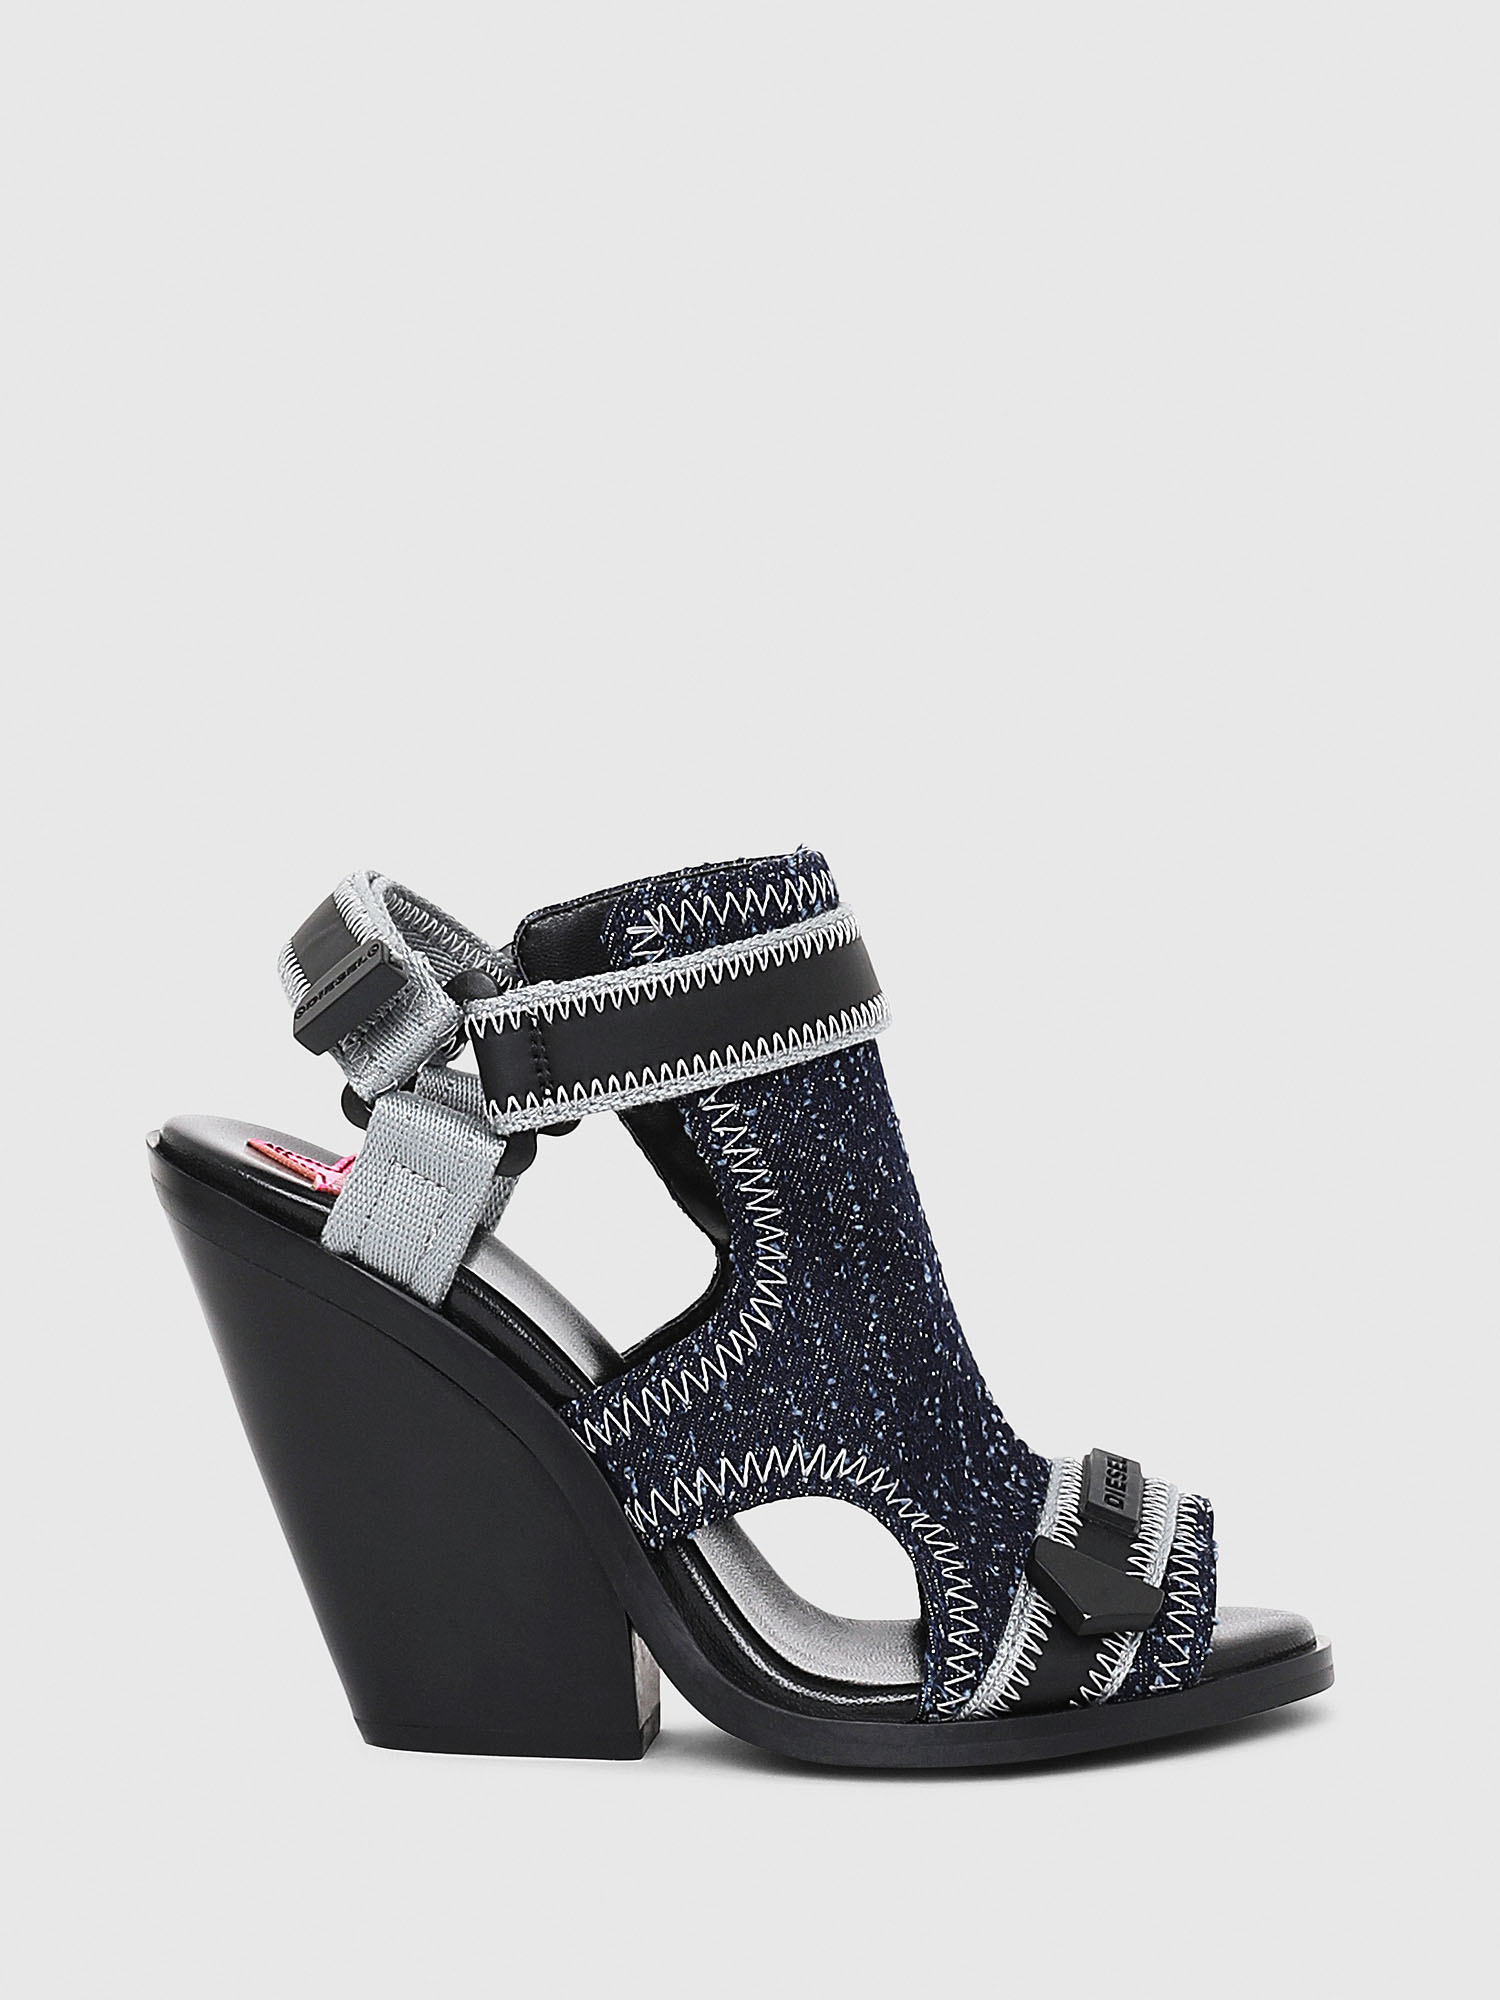 Diesel - SA-FLAMINGO HS,  - Sandals - Image 1